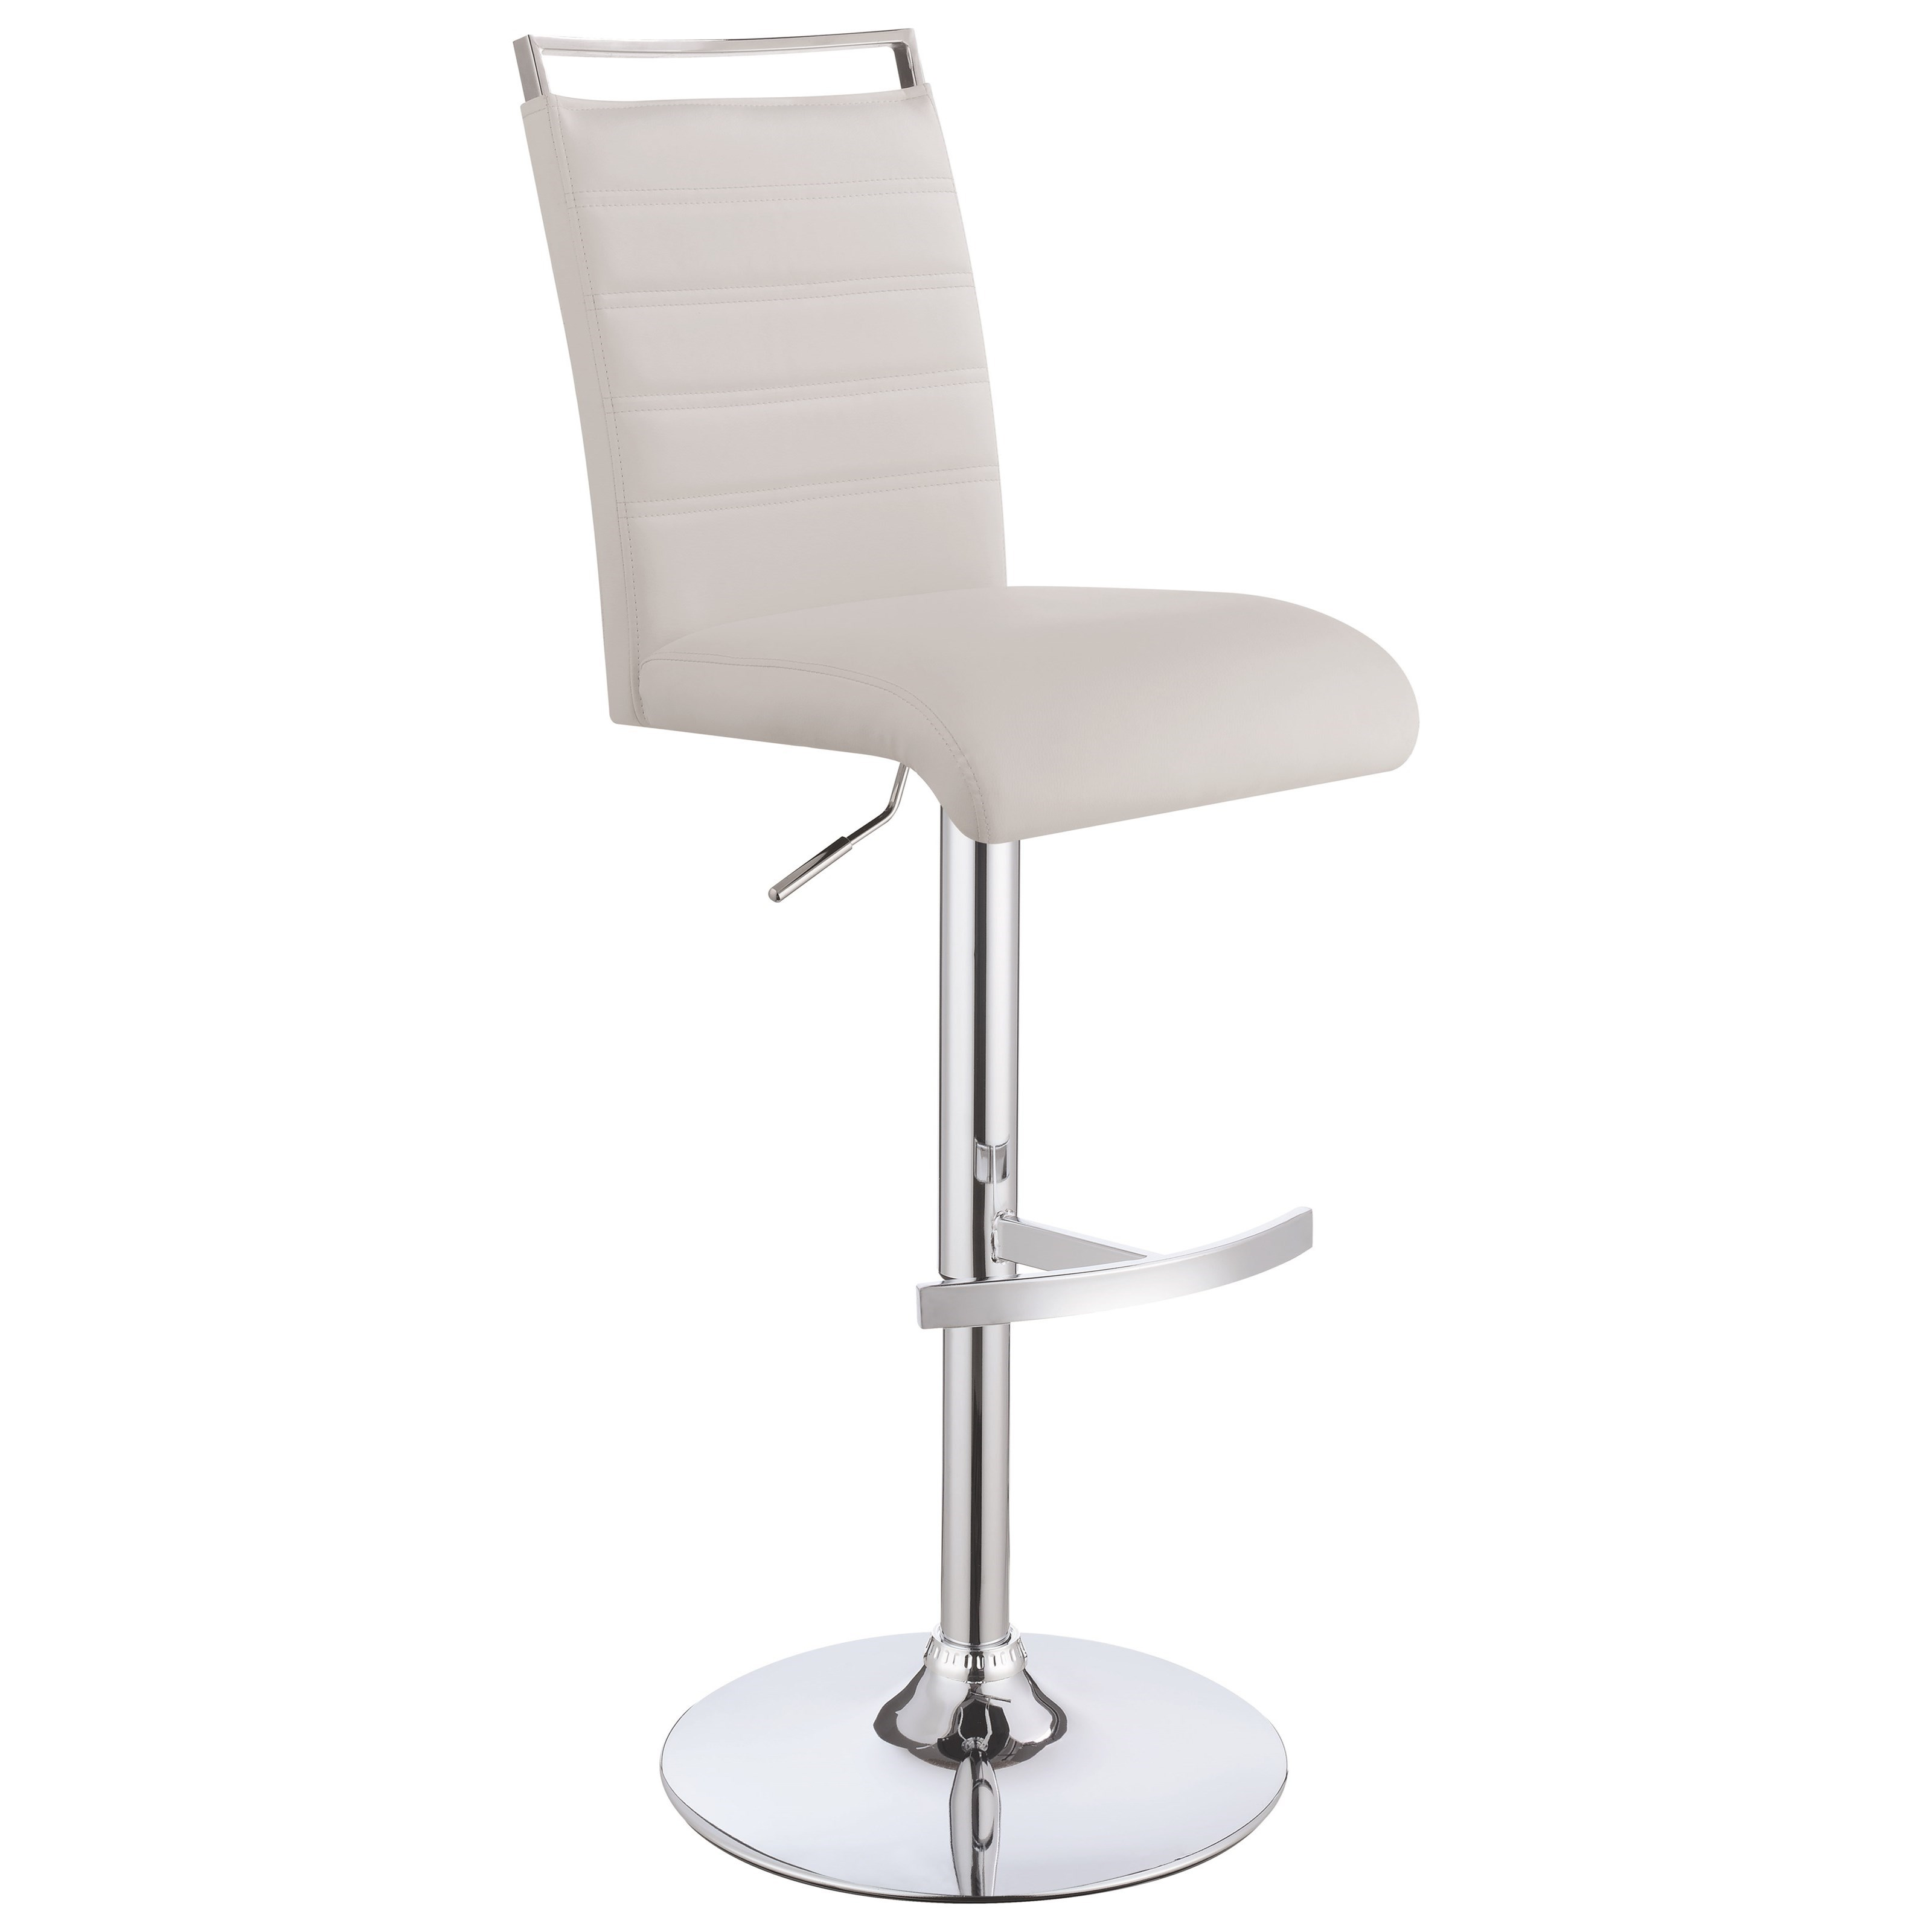 Coaster Dining Chairs and Bar Stools Bar Stool - Item Number: 101146